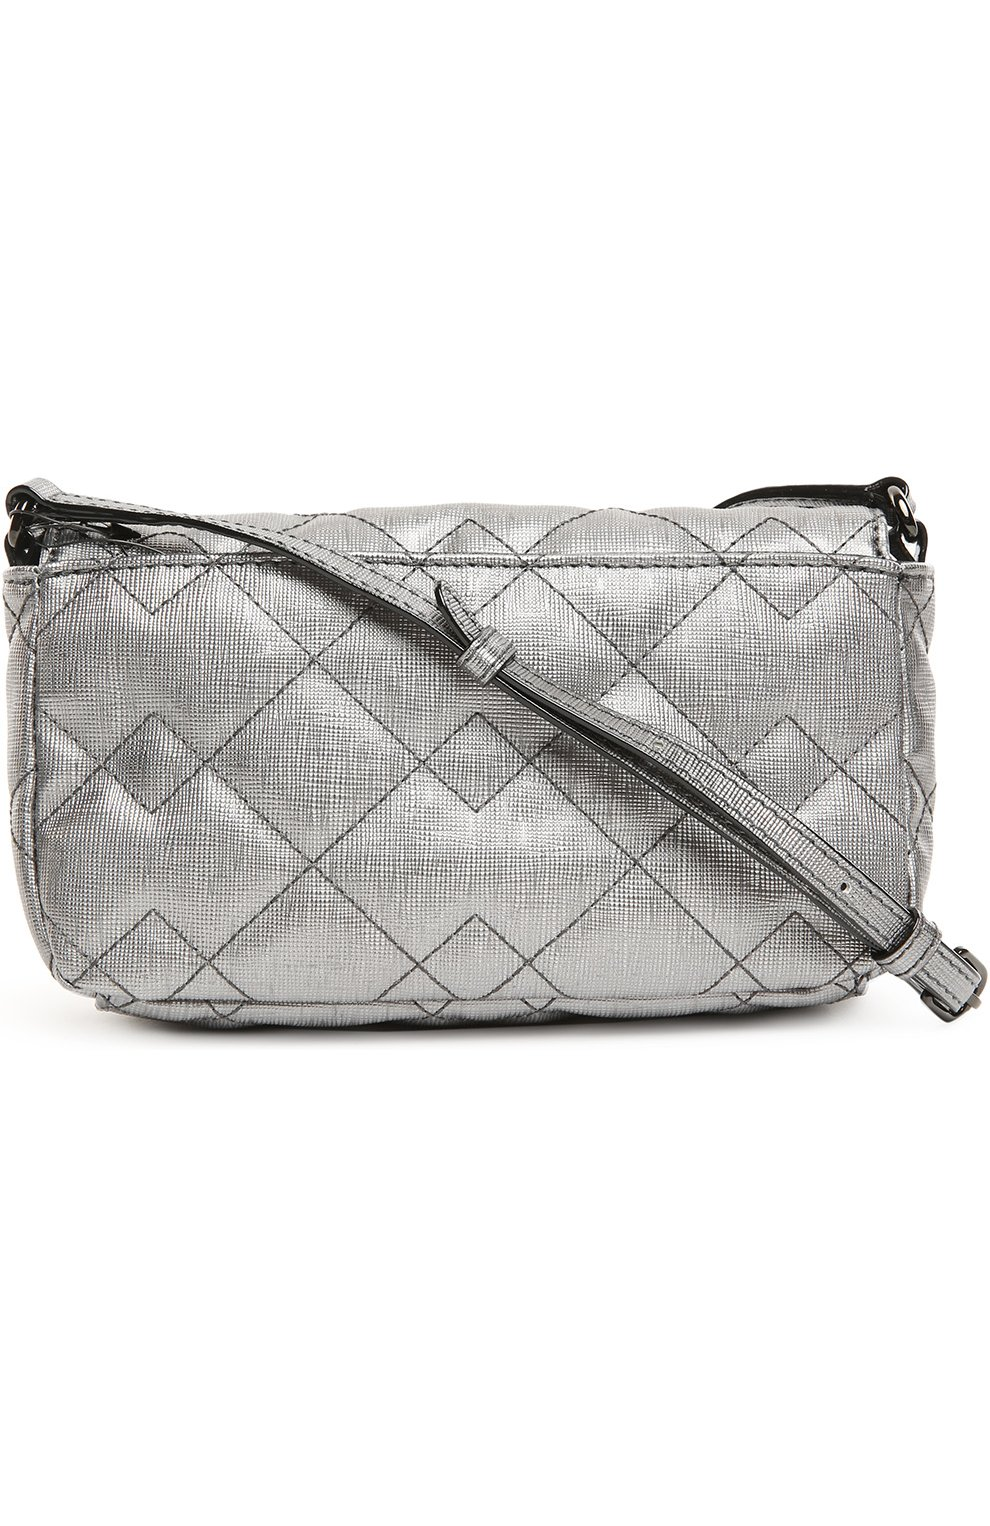 Сумка Sophisticato Quilted Marc by Marc Jacobs серая | Фото №2